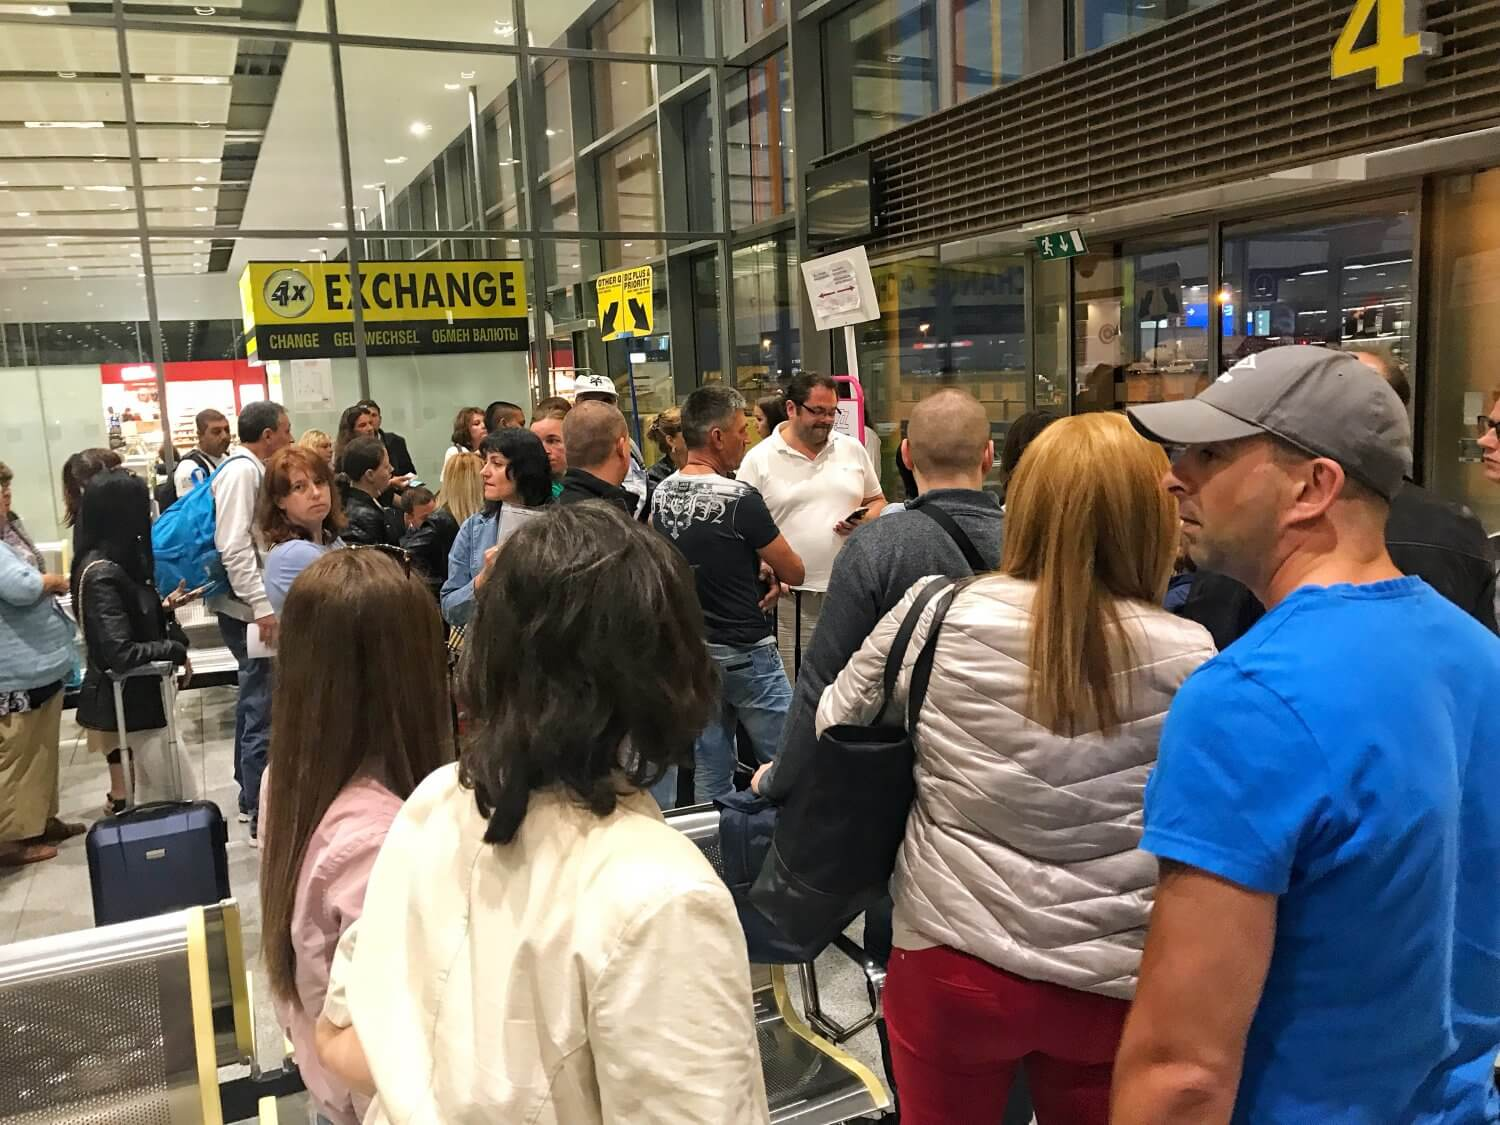 Crazy crowds for Wizz Air at Varna Airport